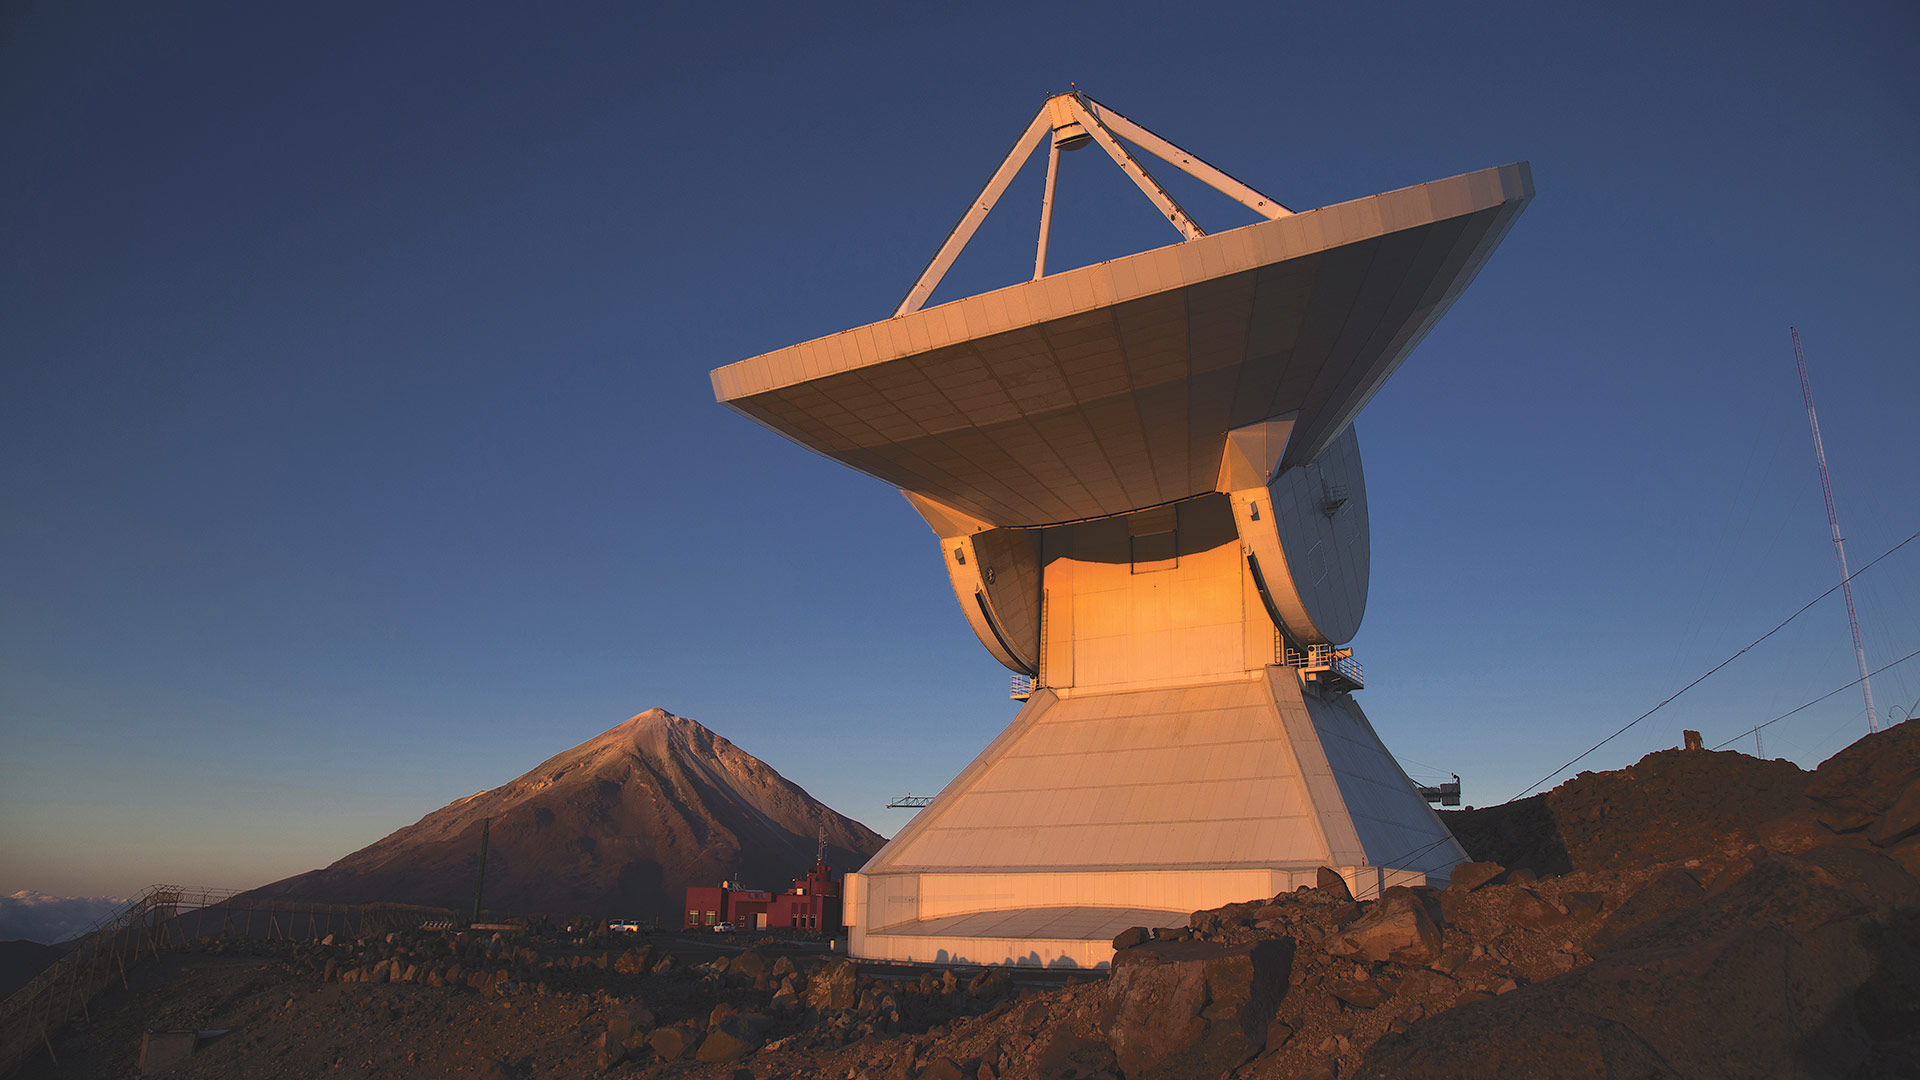 The LMT (Large Millimeter Telescope) in Mexico